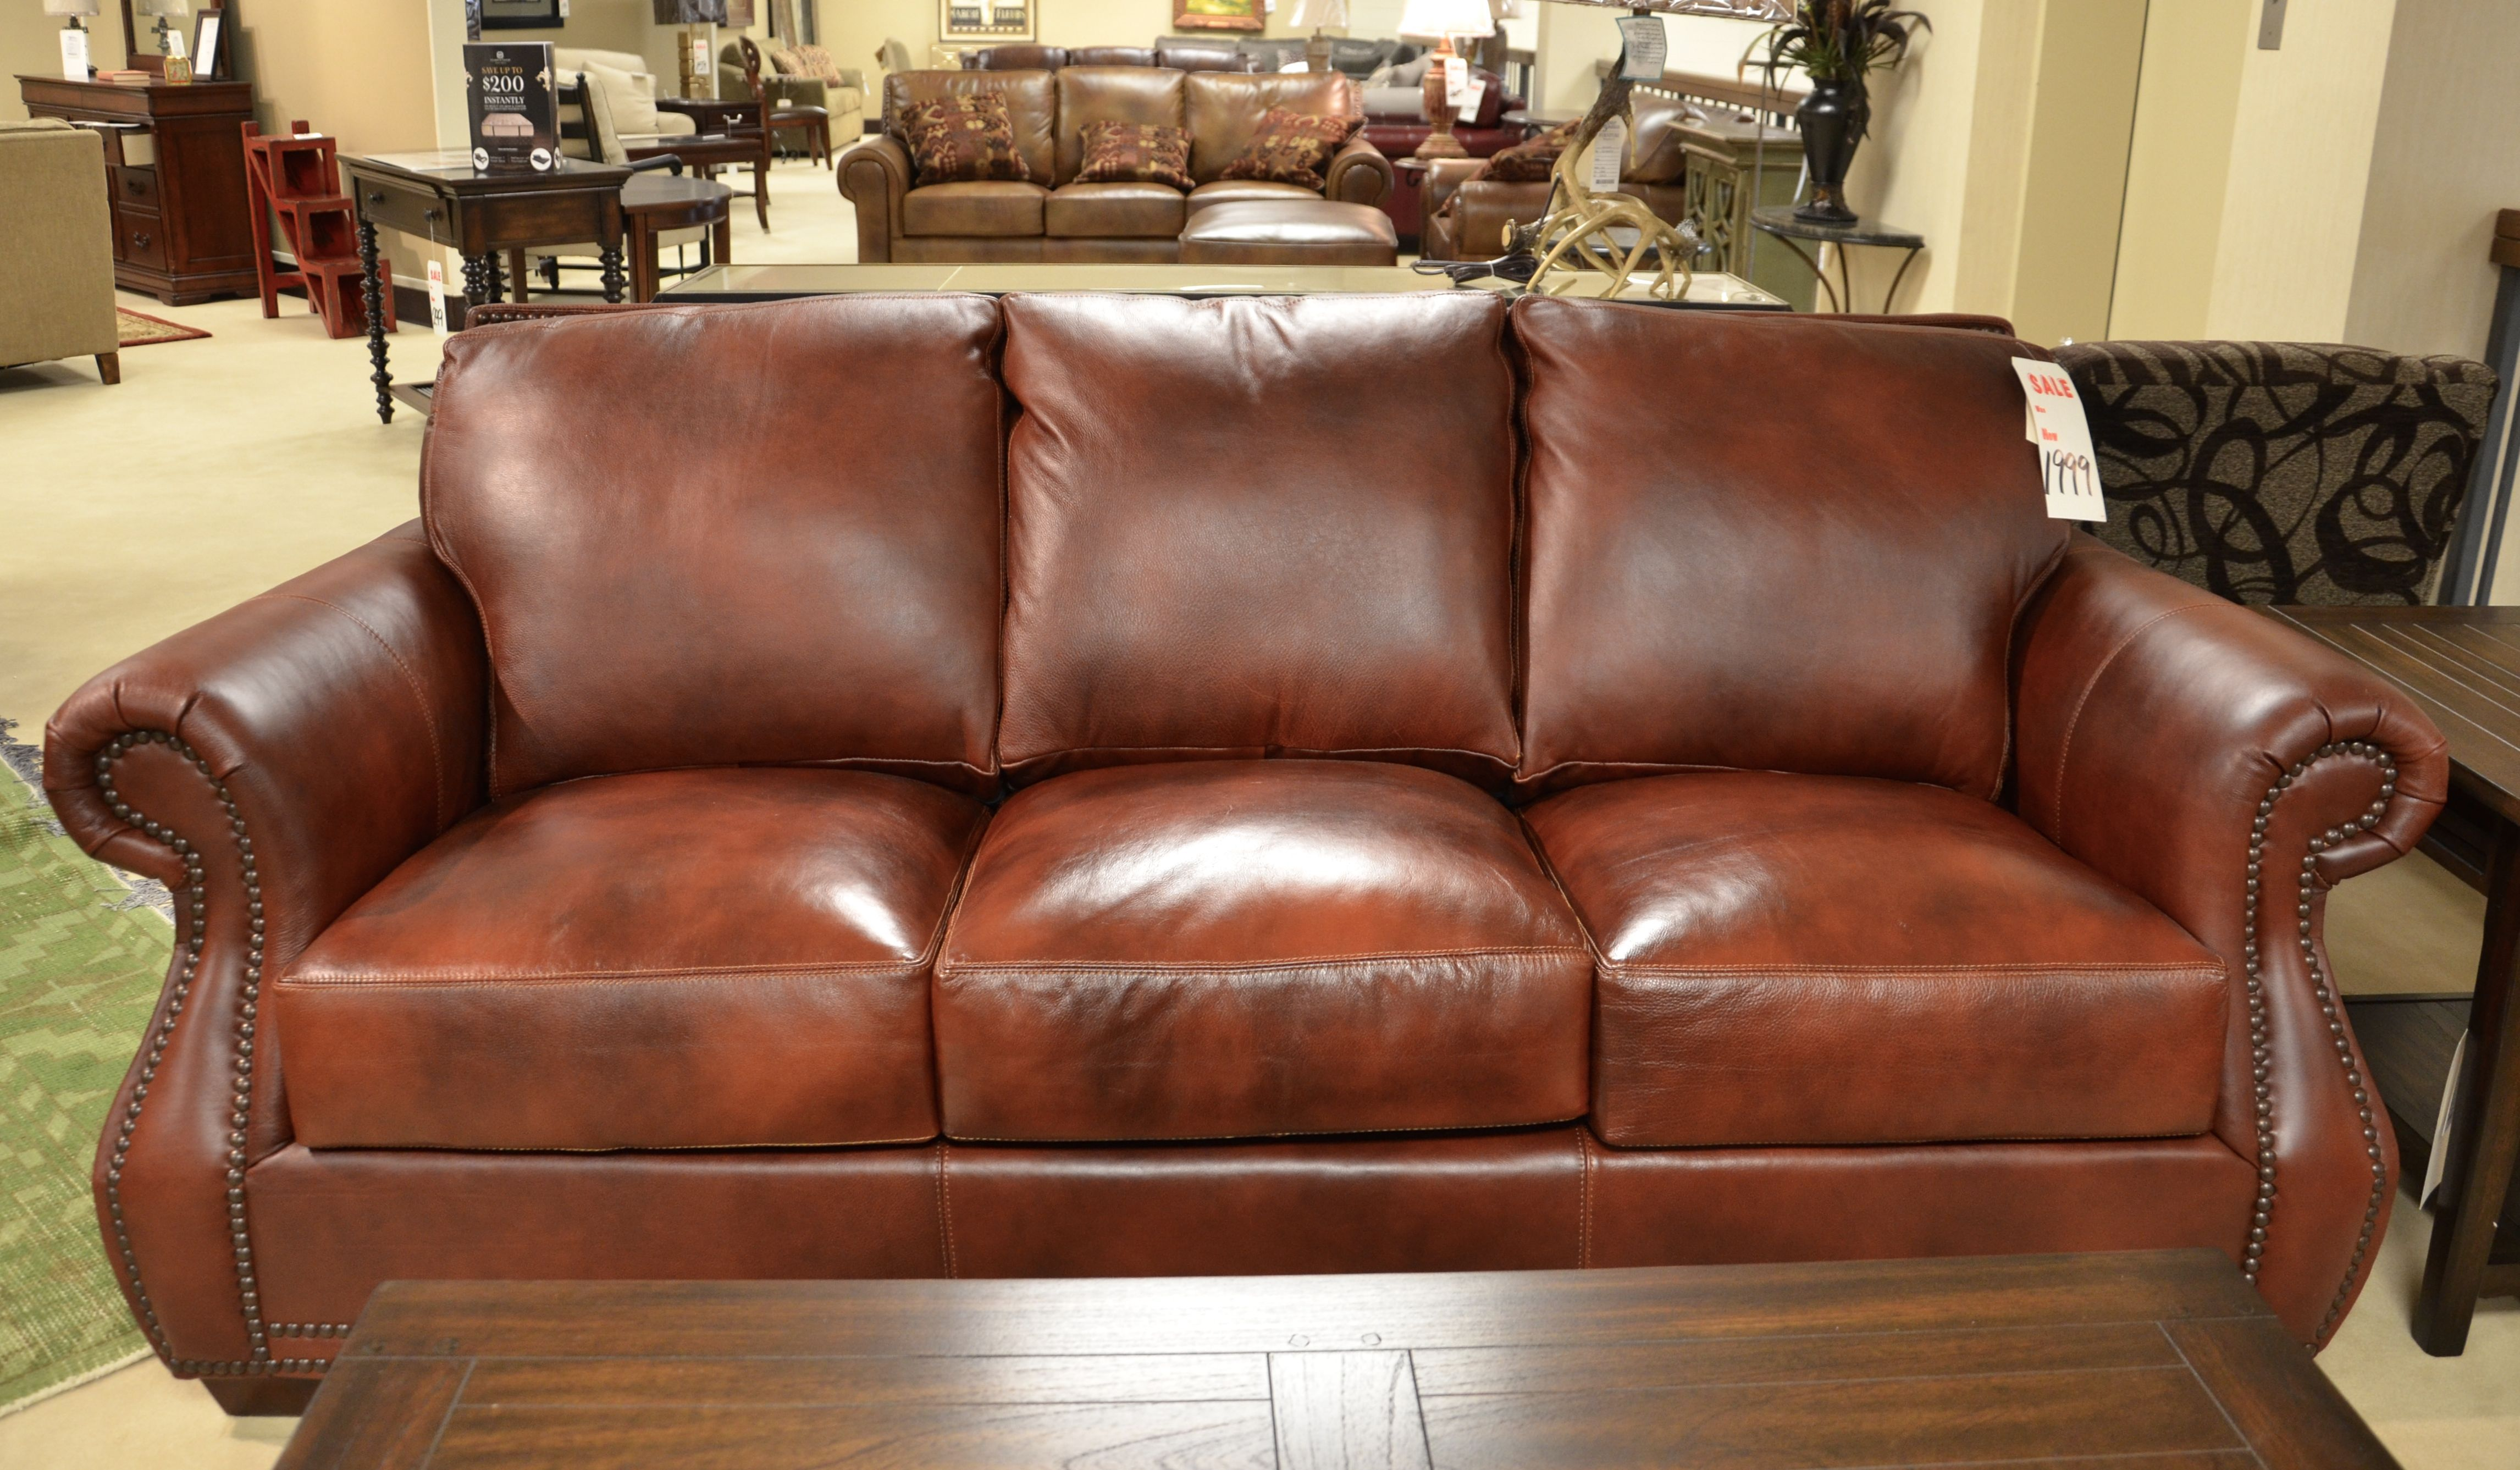 lane home furnishings leather sofa and loveseat from the bowden collection gray tufted chesterfield with nail head studded trim casual furniture